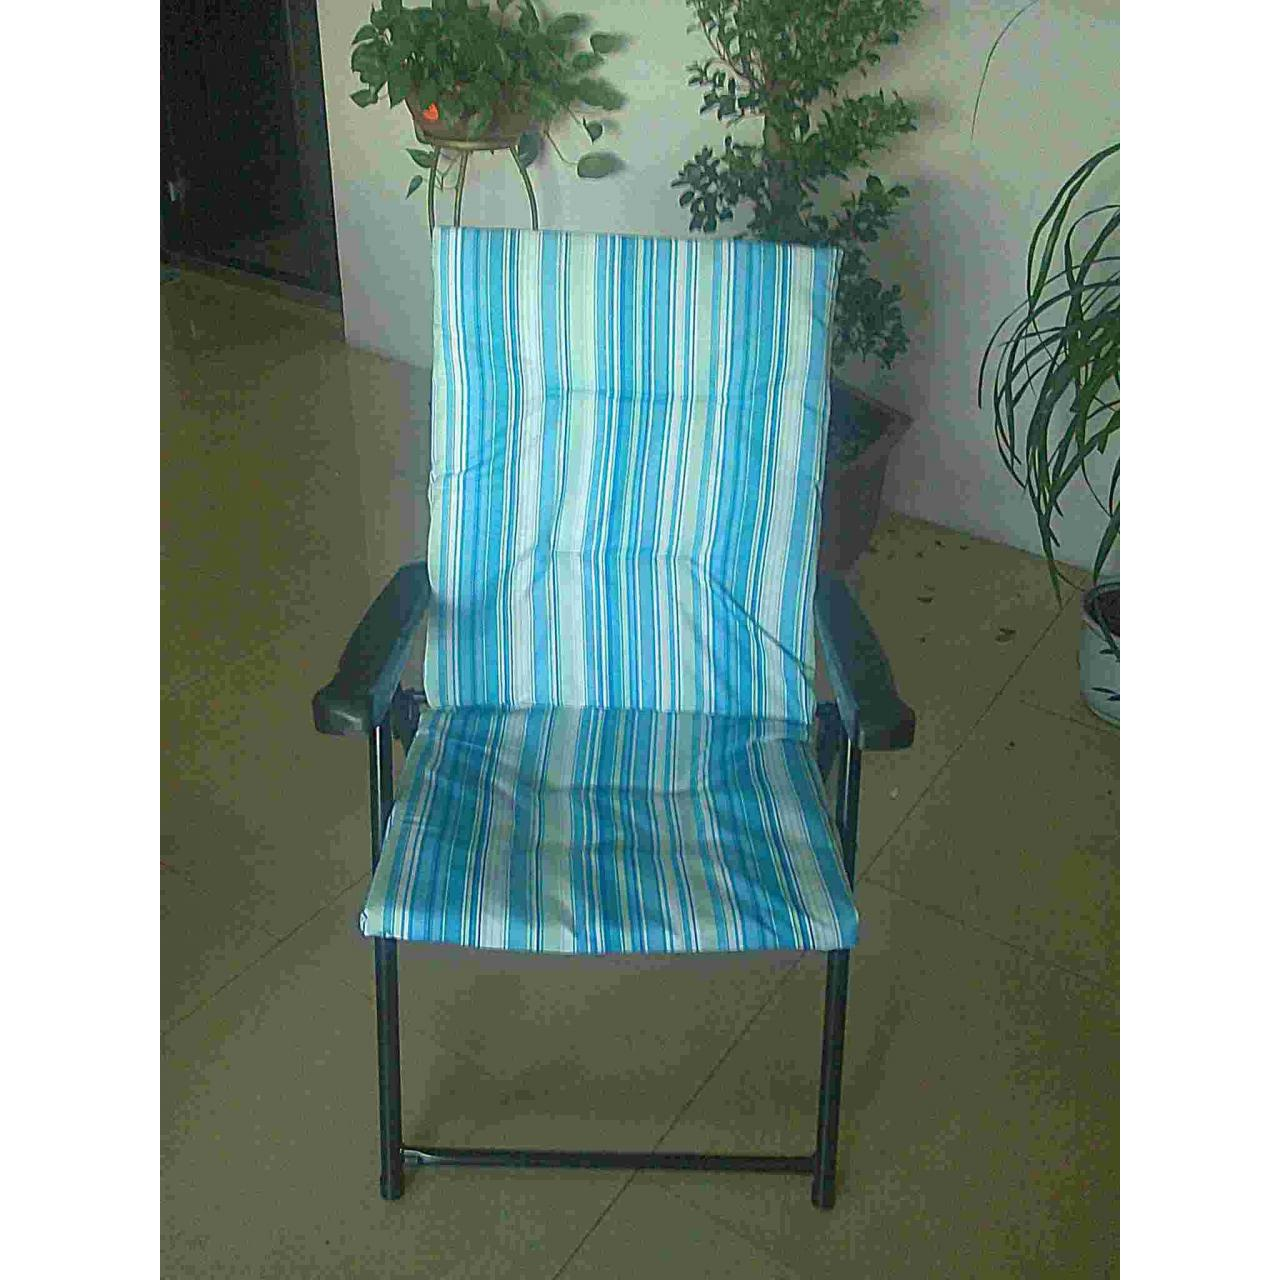 Quality Outdoor Capacity ZC-52 foldable chair for sale